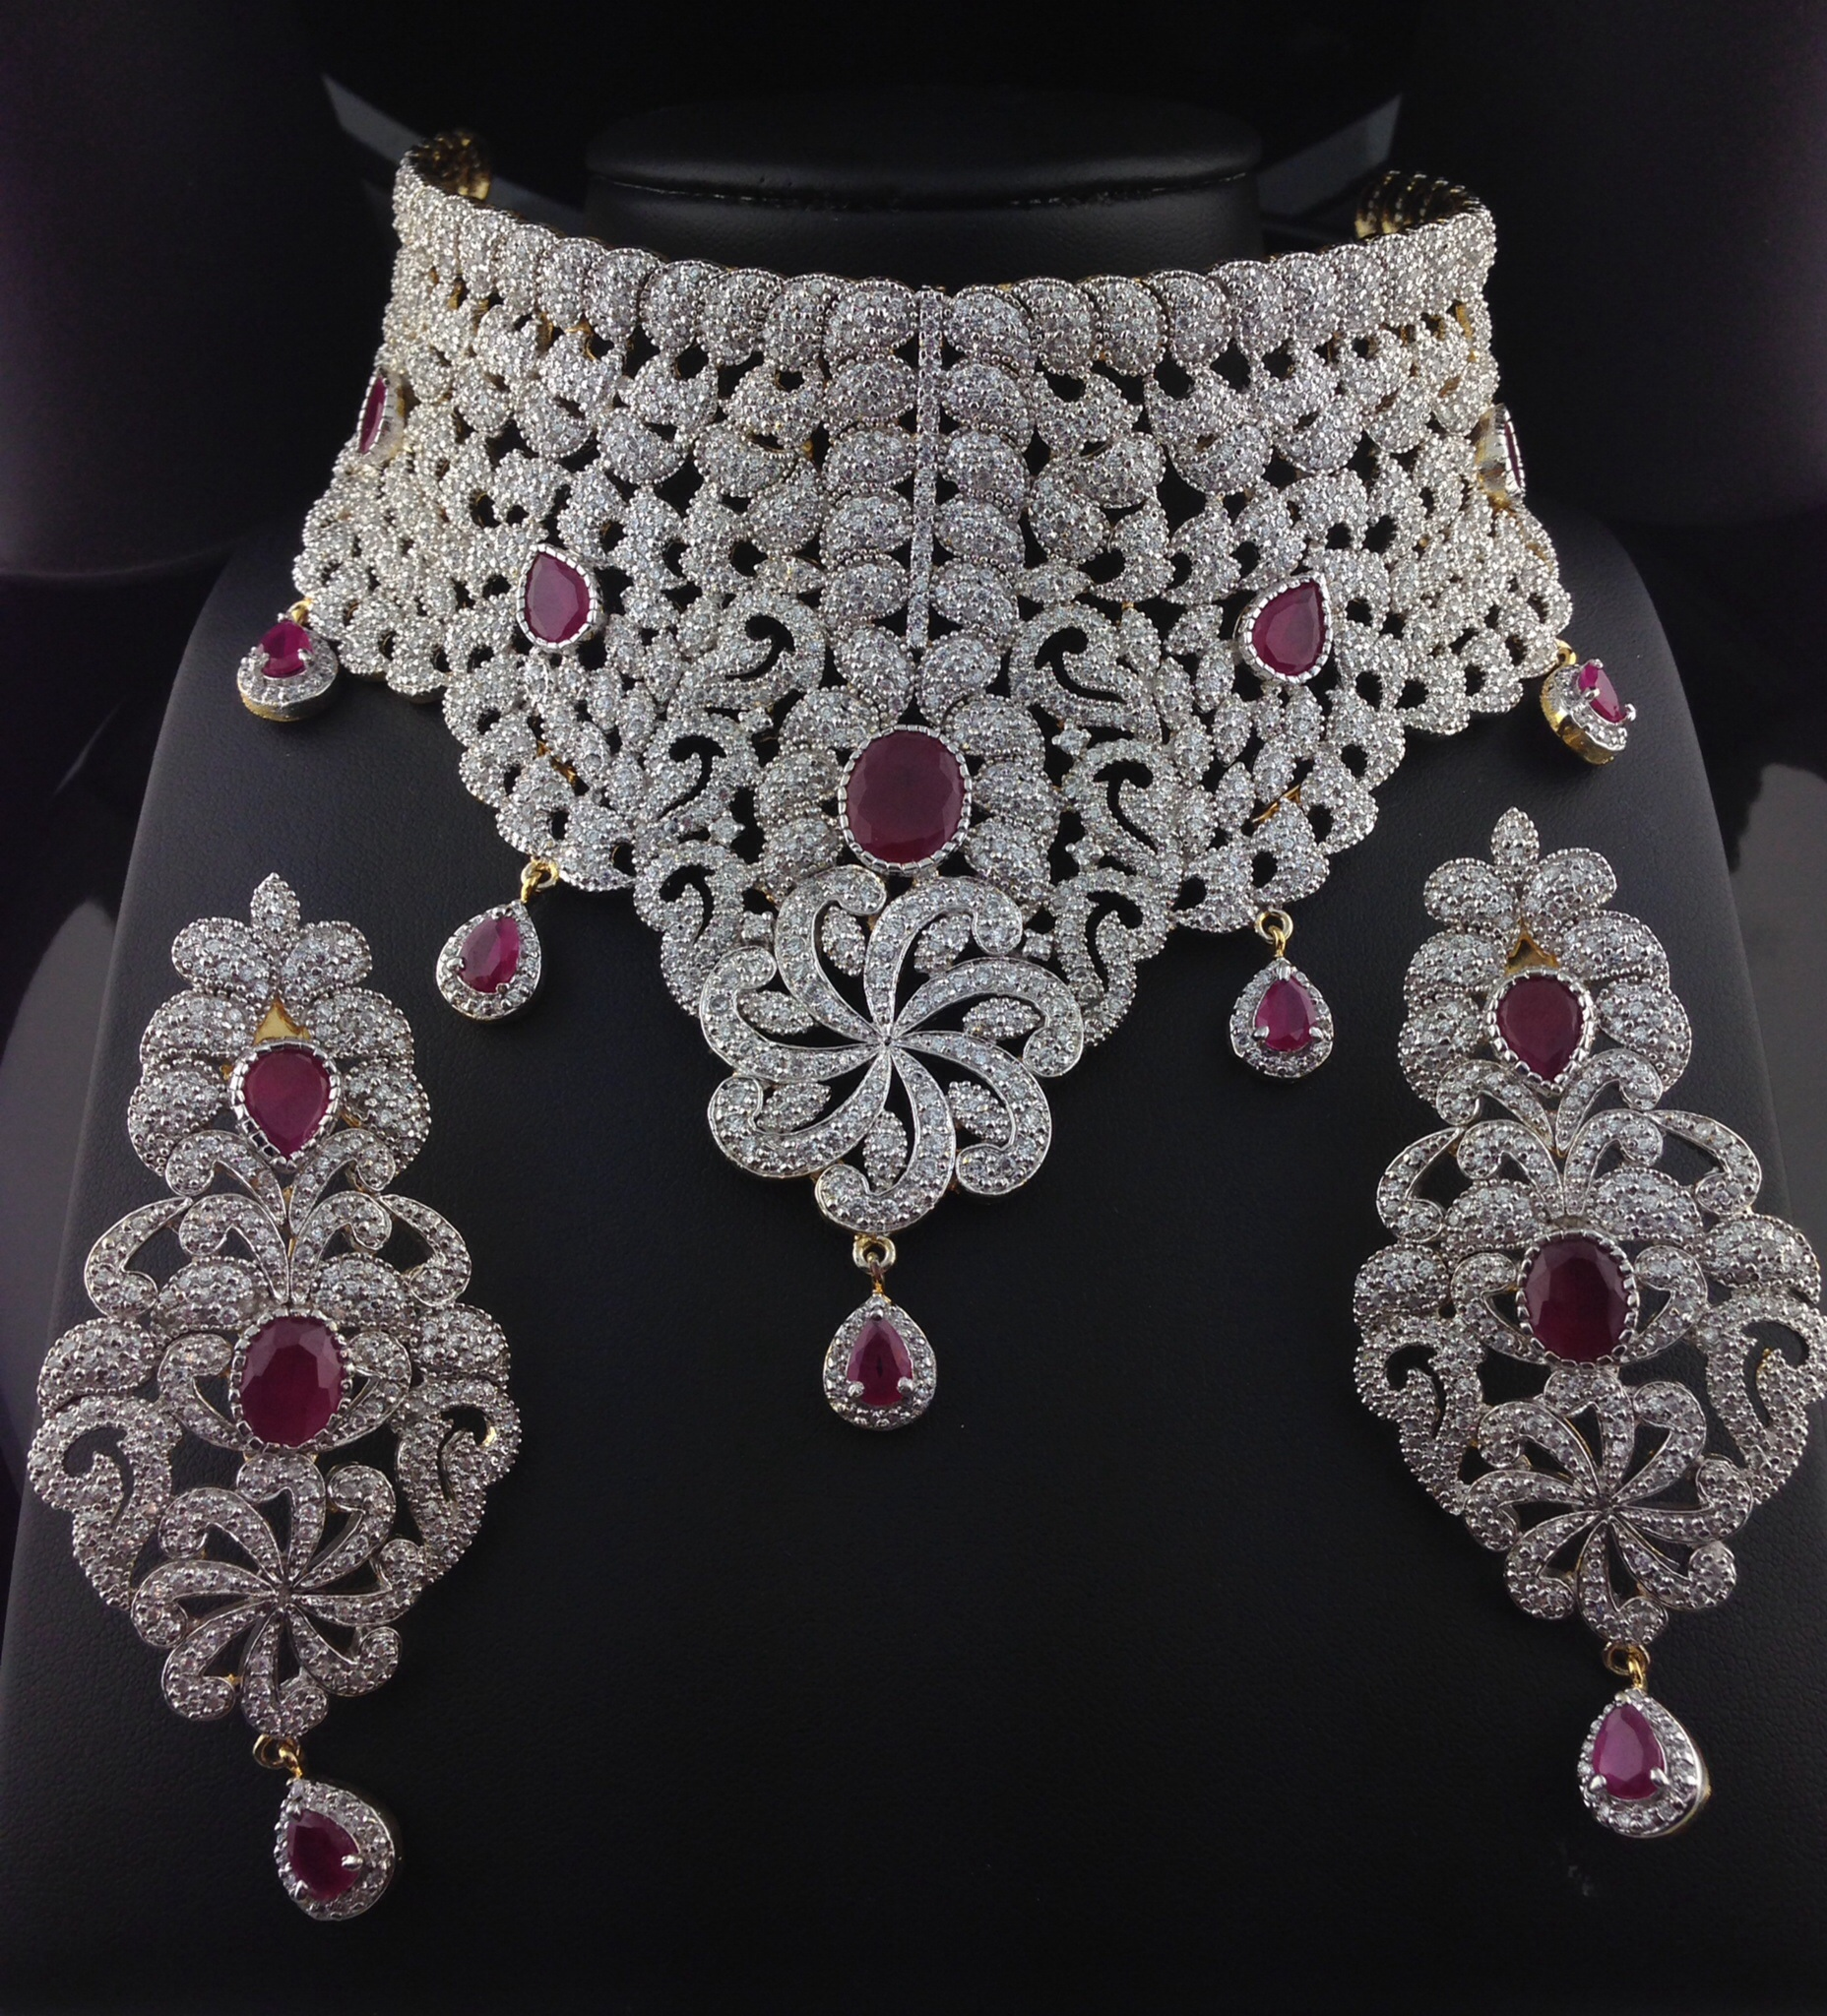 atlanta rubies gold p islamic kundan in set diamond american jewelry with online bridal necklace and stunning indian